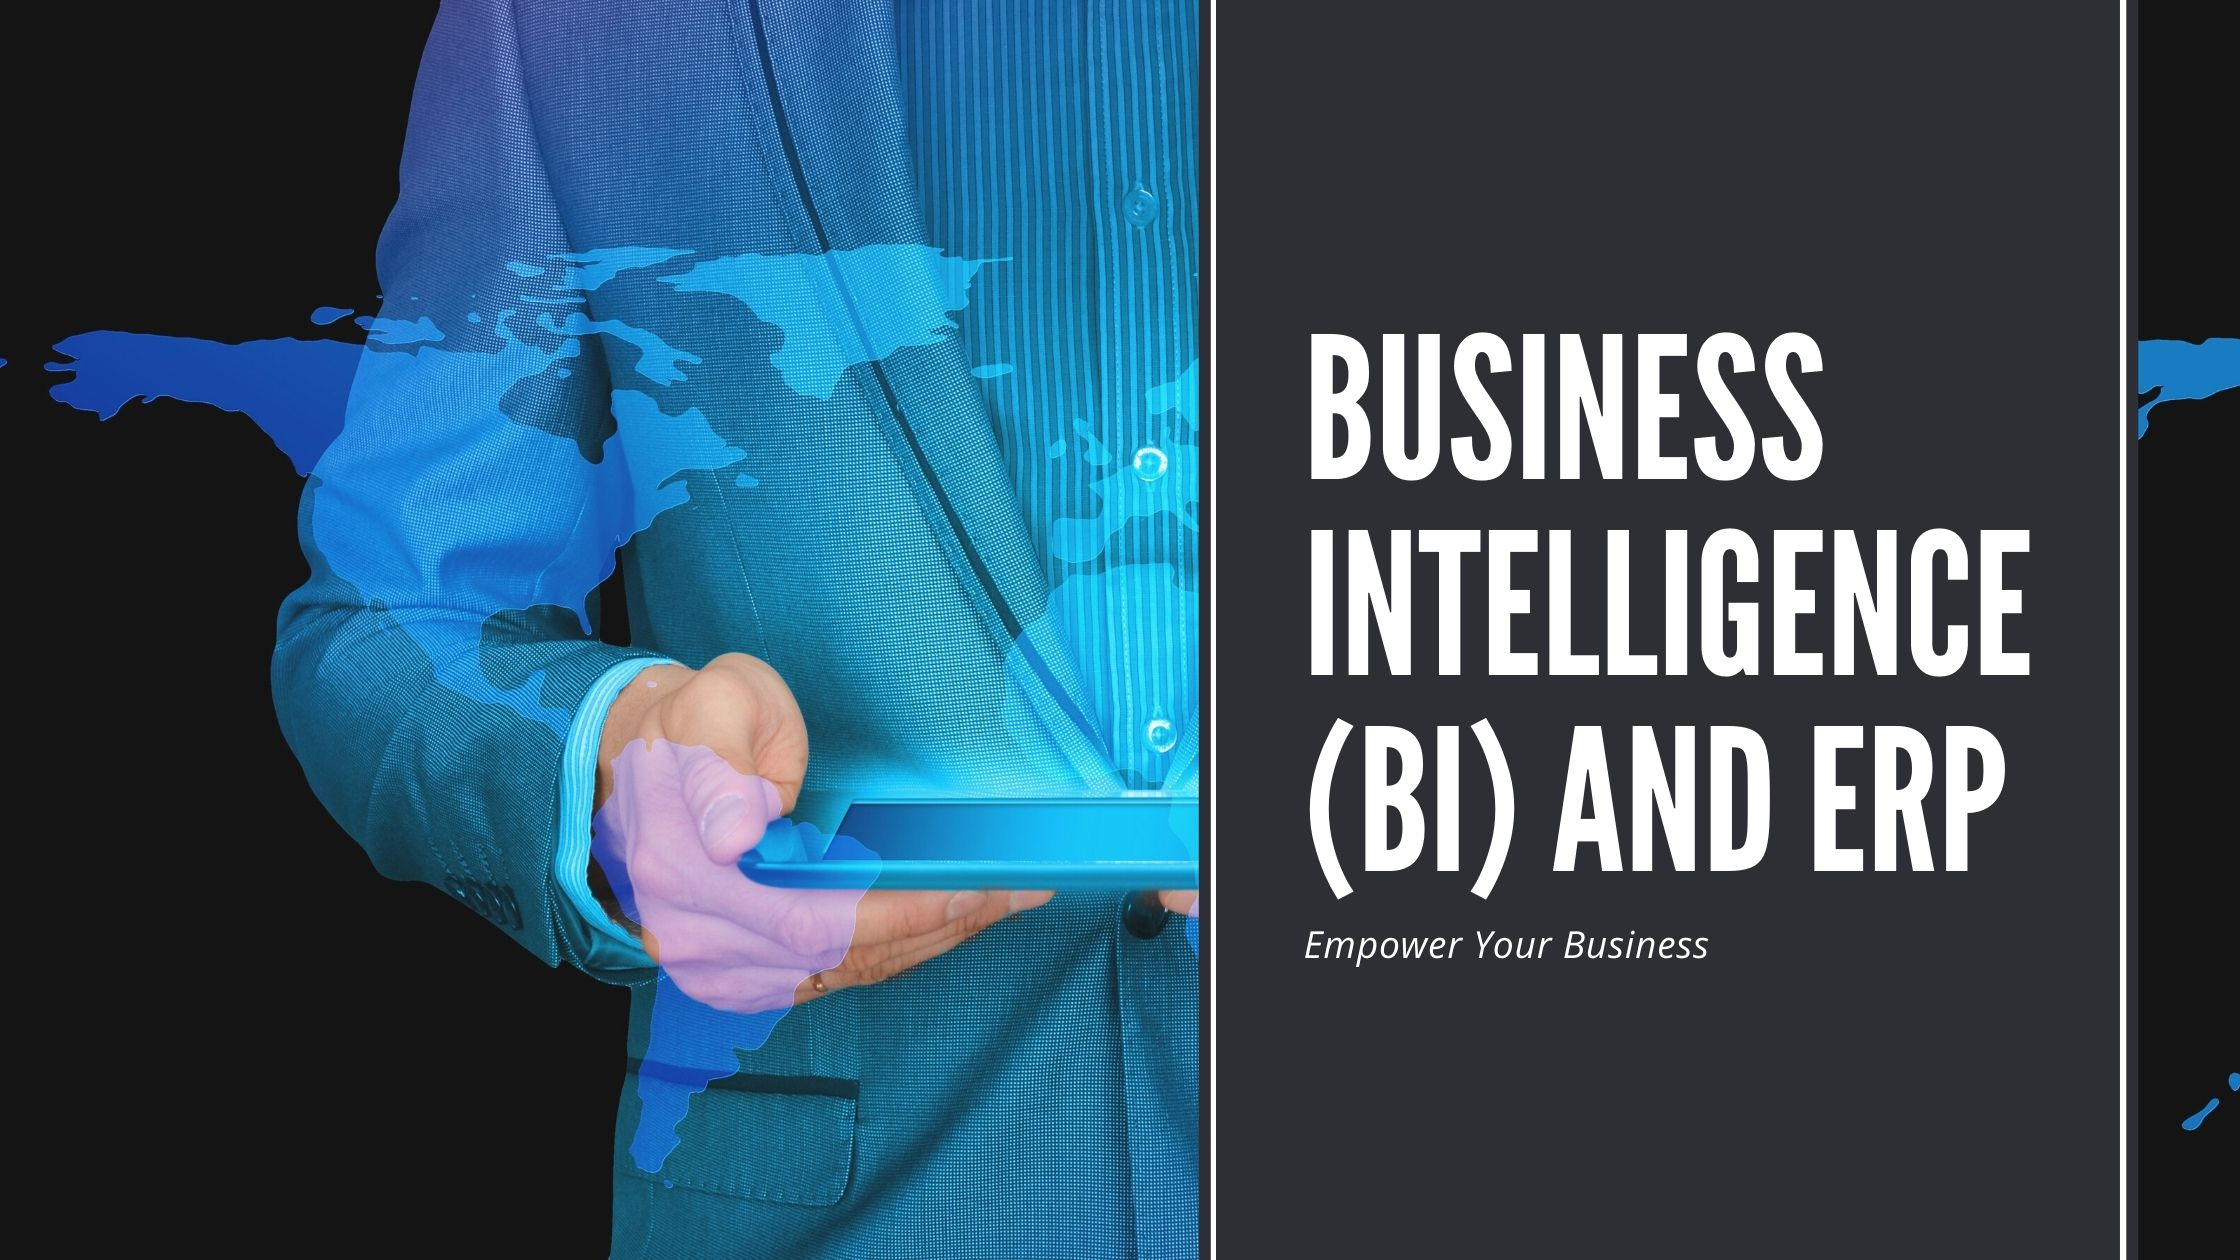 The connection between business intelligence (BI) and ERP | YGL Beyond ERP Industry 4.0